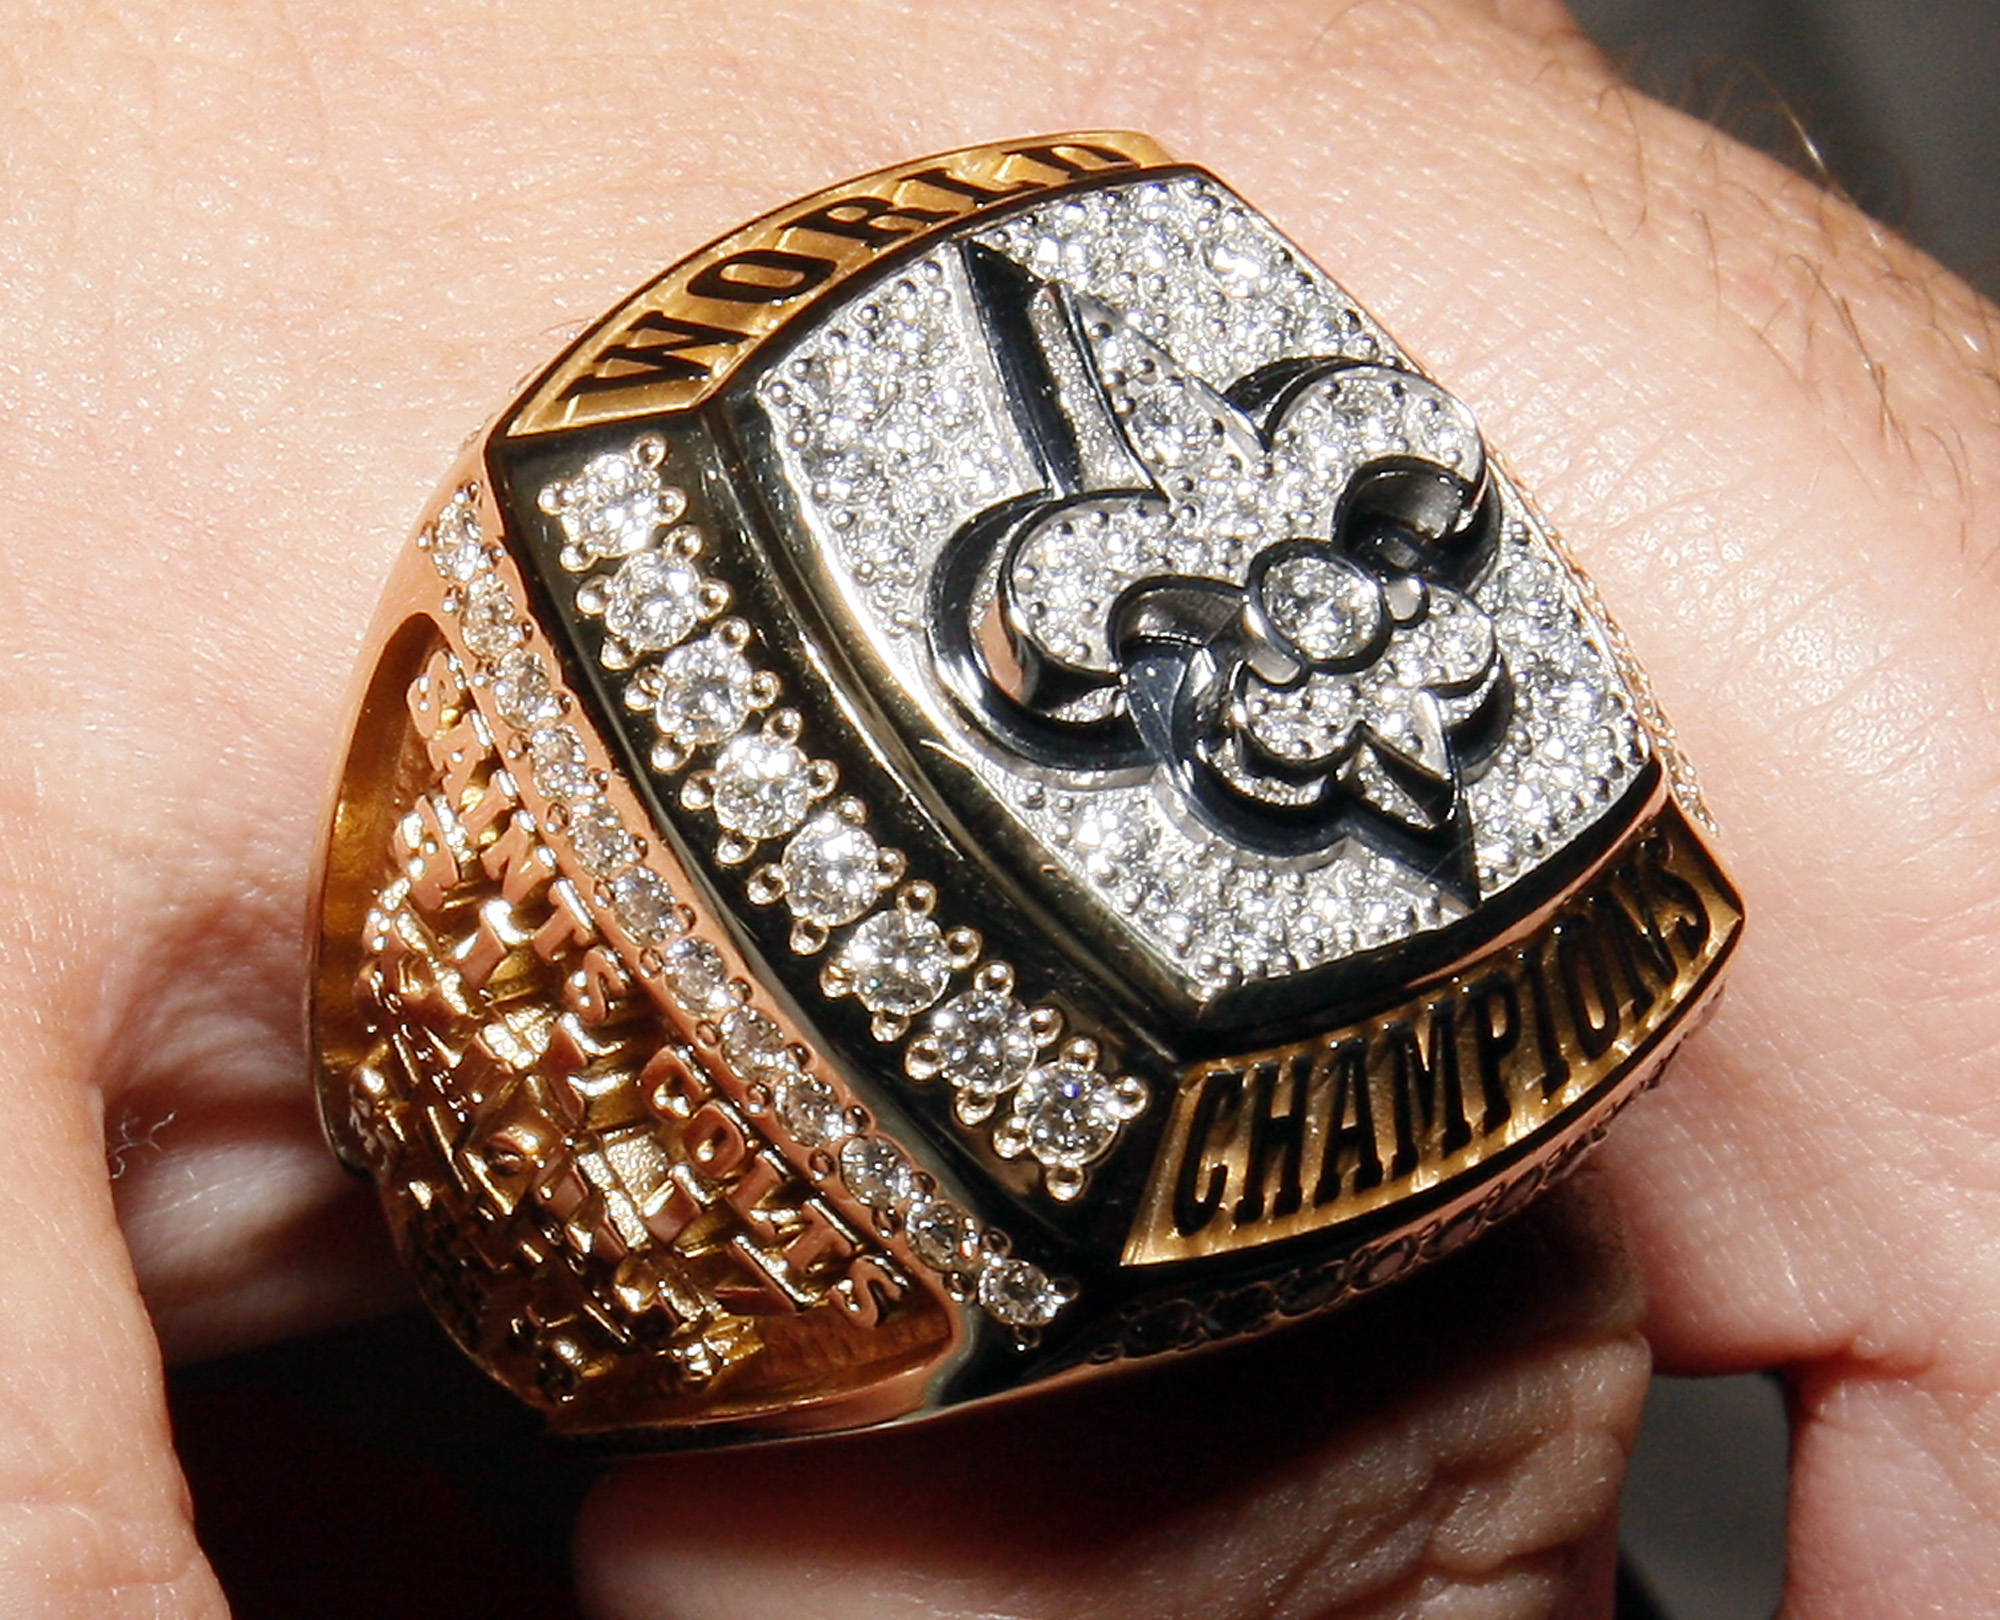 saints again com press with al ceremony bowl cel rings title register ring champion super sports celebrate